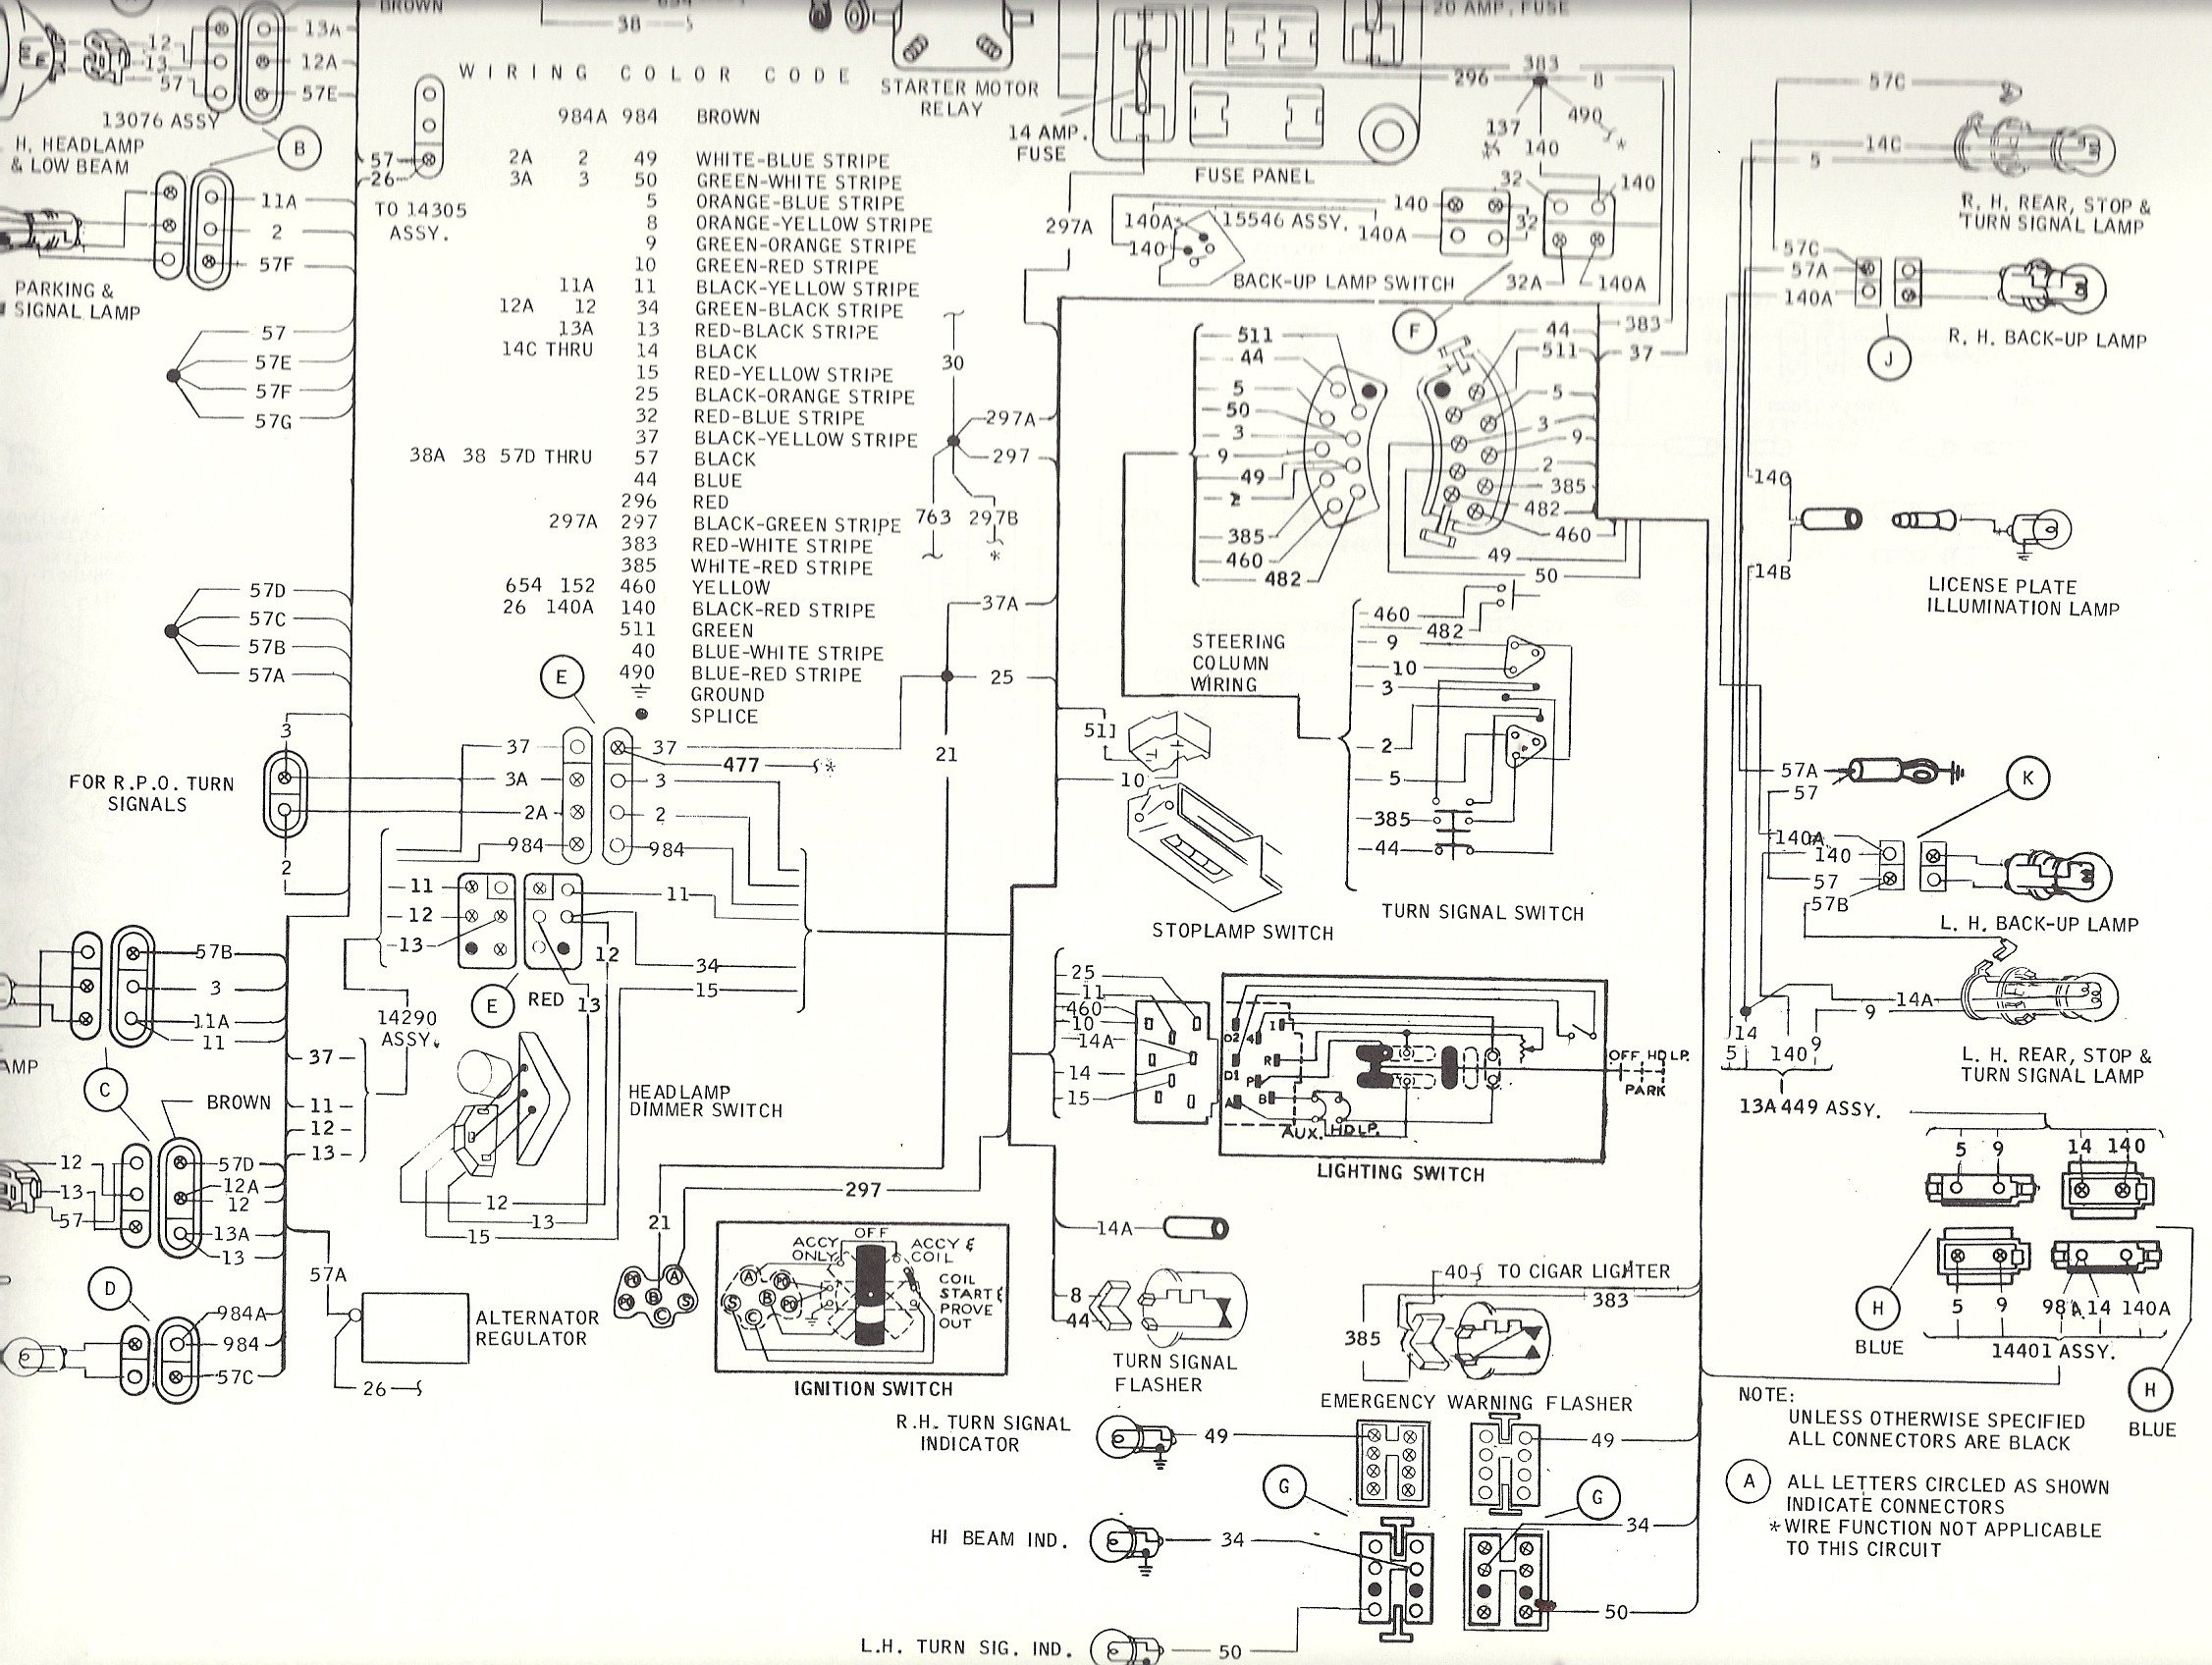 1970 Chevelle Dash Wiring Diagram. Wiring. Wiring Diagrams Instructions